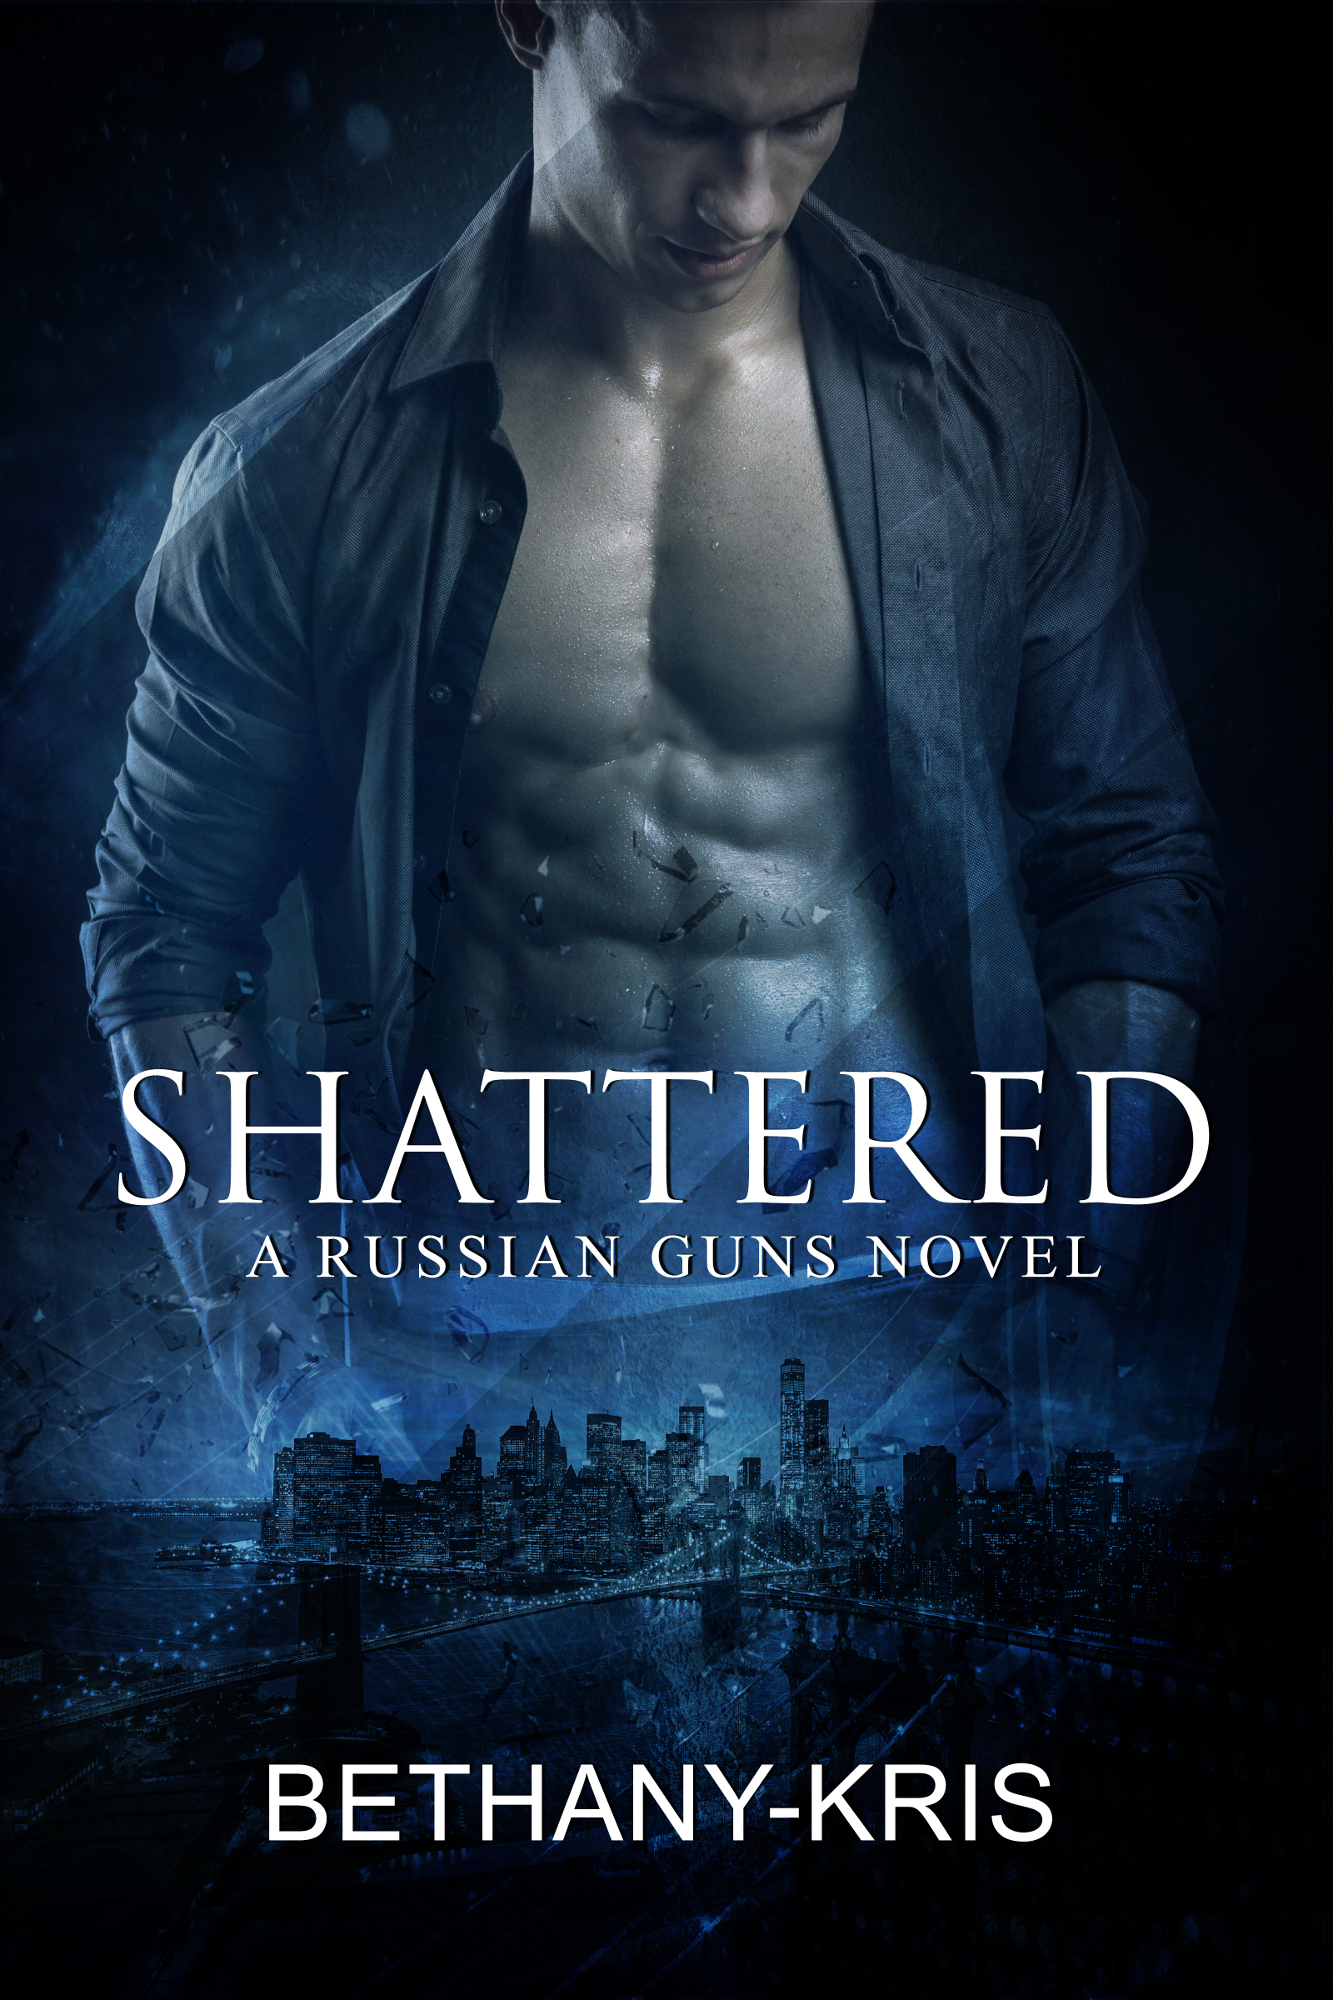 Bethany-Kris - The Russian Guns 5 - Shattered